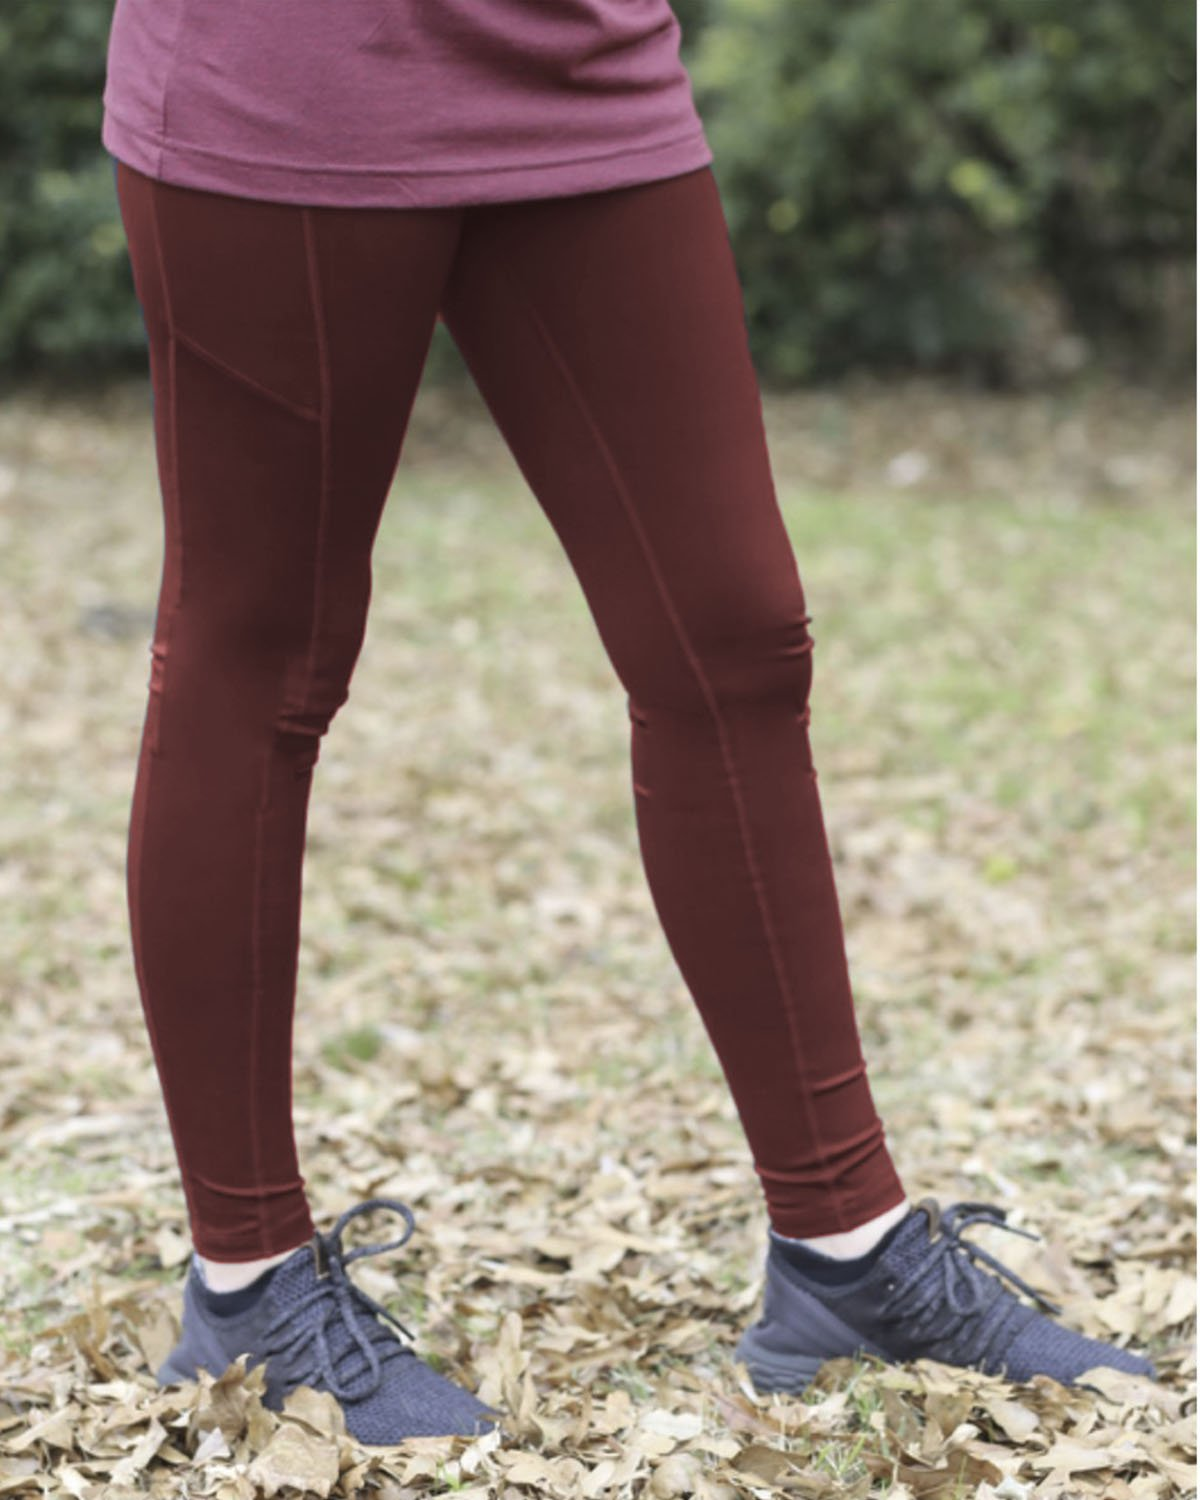 LG-1824 Burgundy Leggings